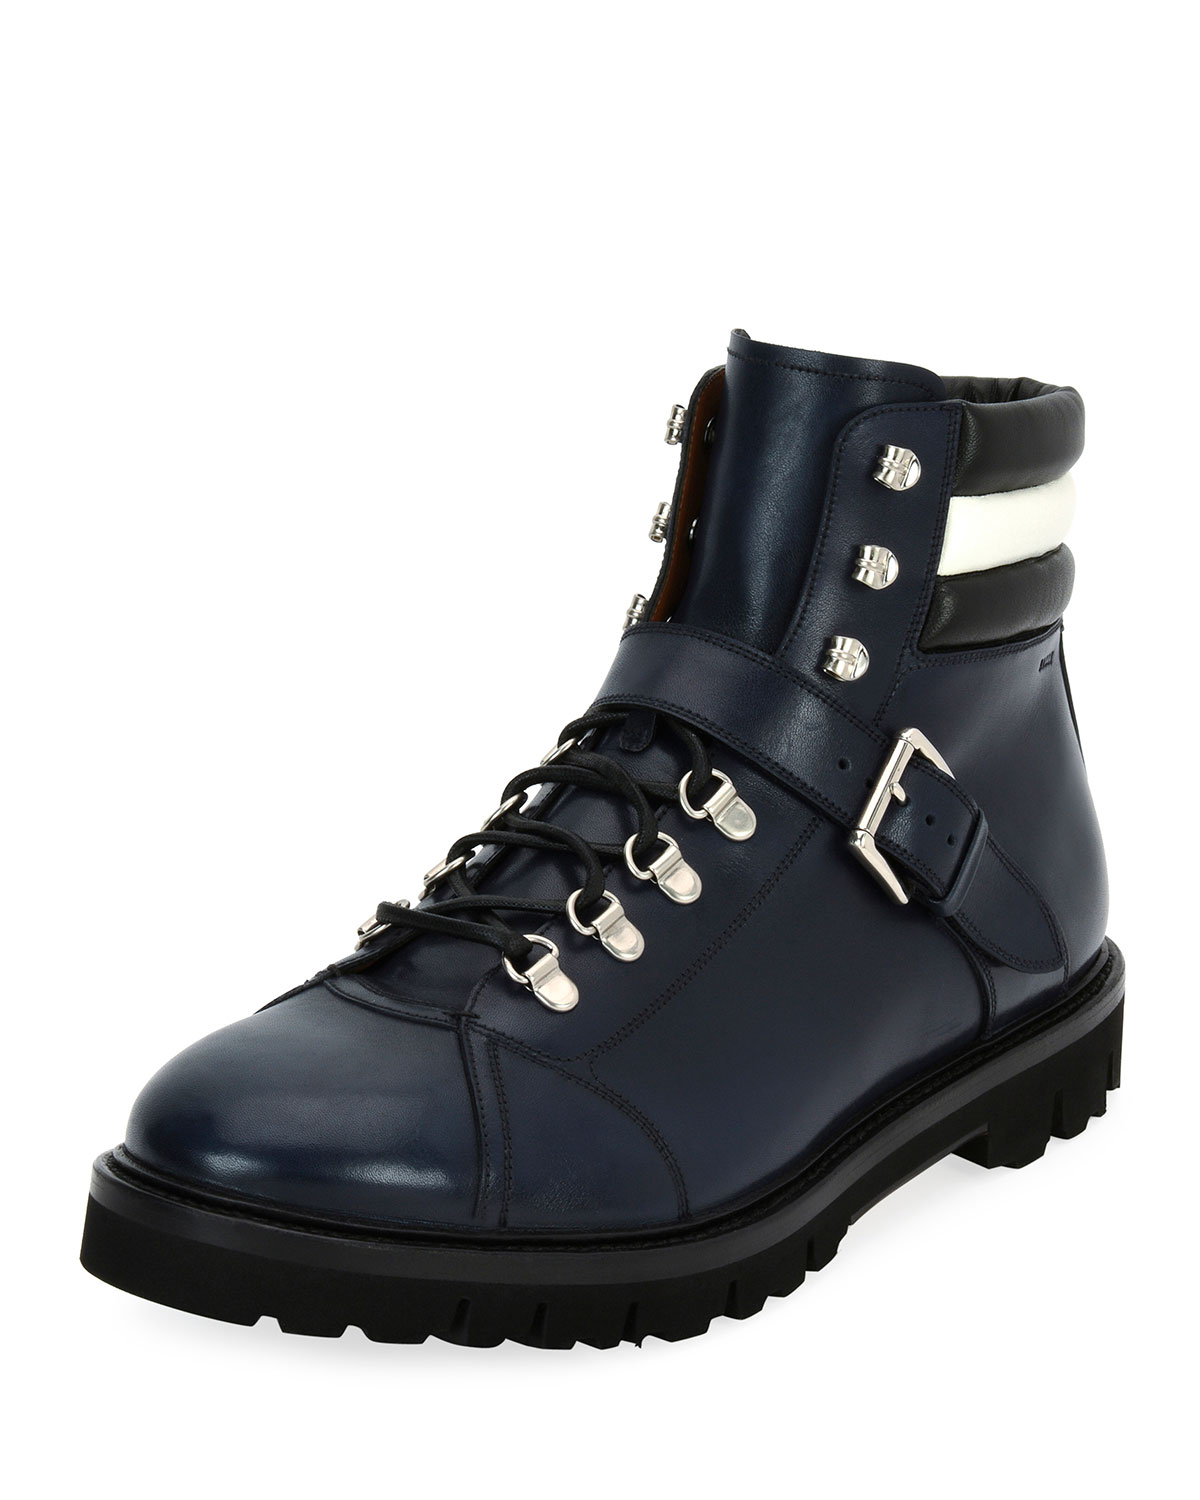 Champions Leather Hiking Boot